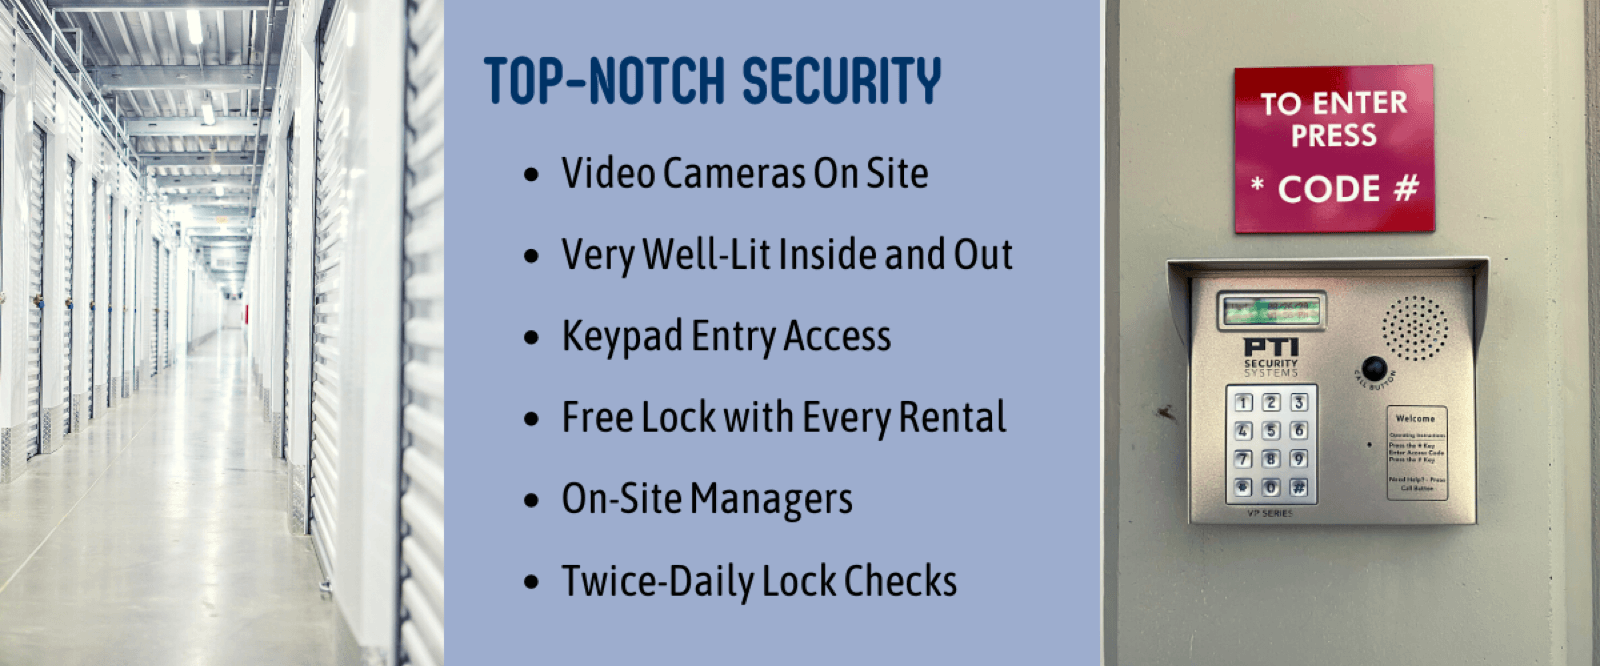 security cameras well lit secure keypad entry free disc lock on site managers daily lock checks